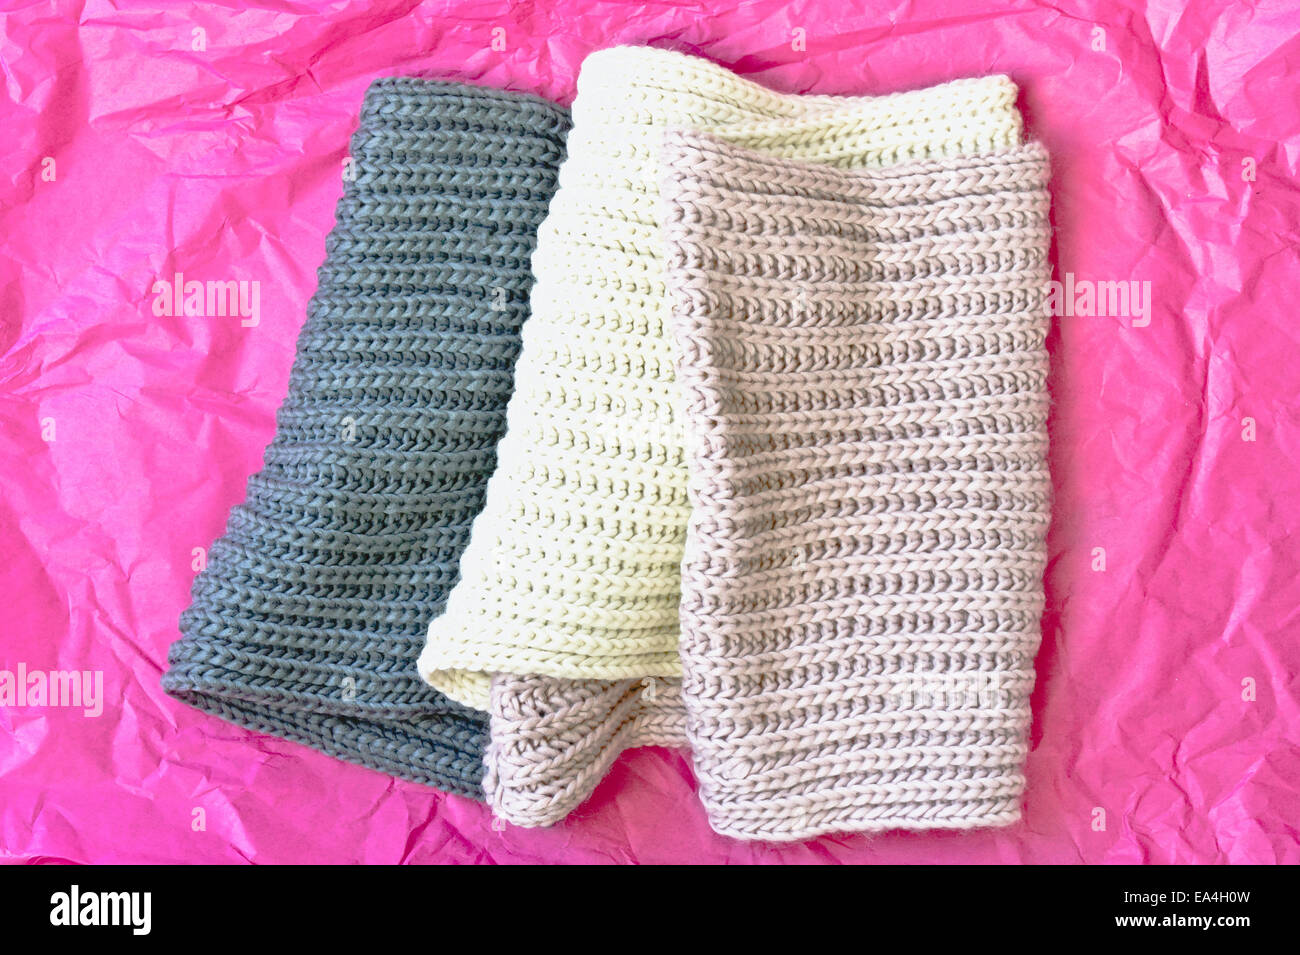 A folded wool scarf on a piece of pink tissue paper - Stock Image